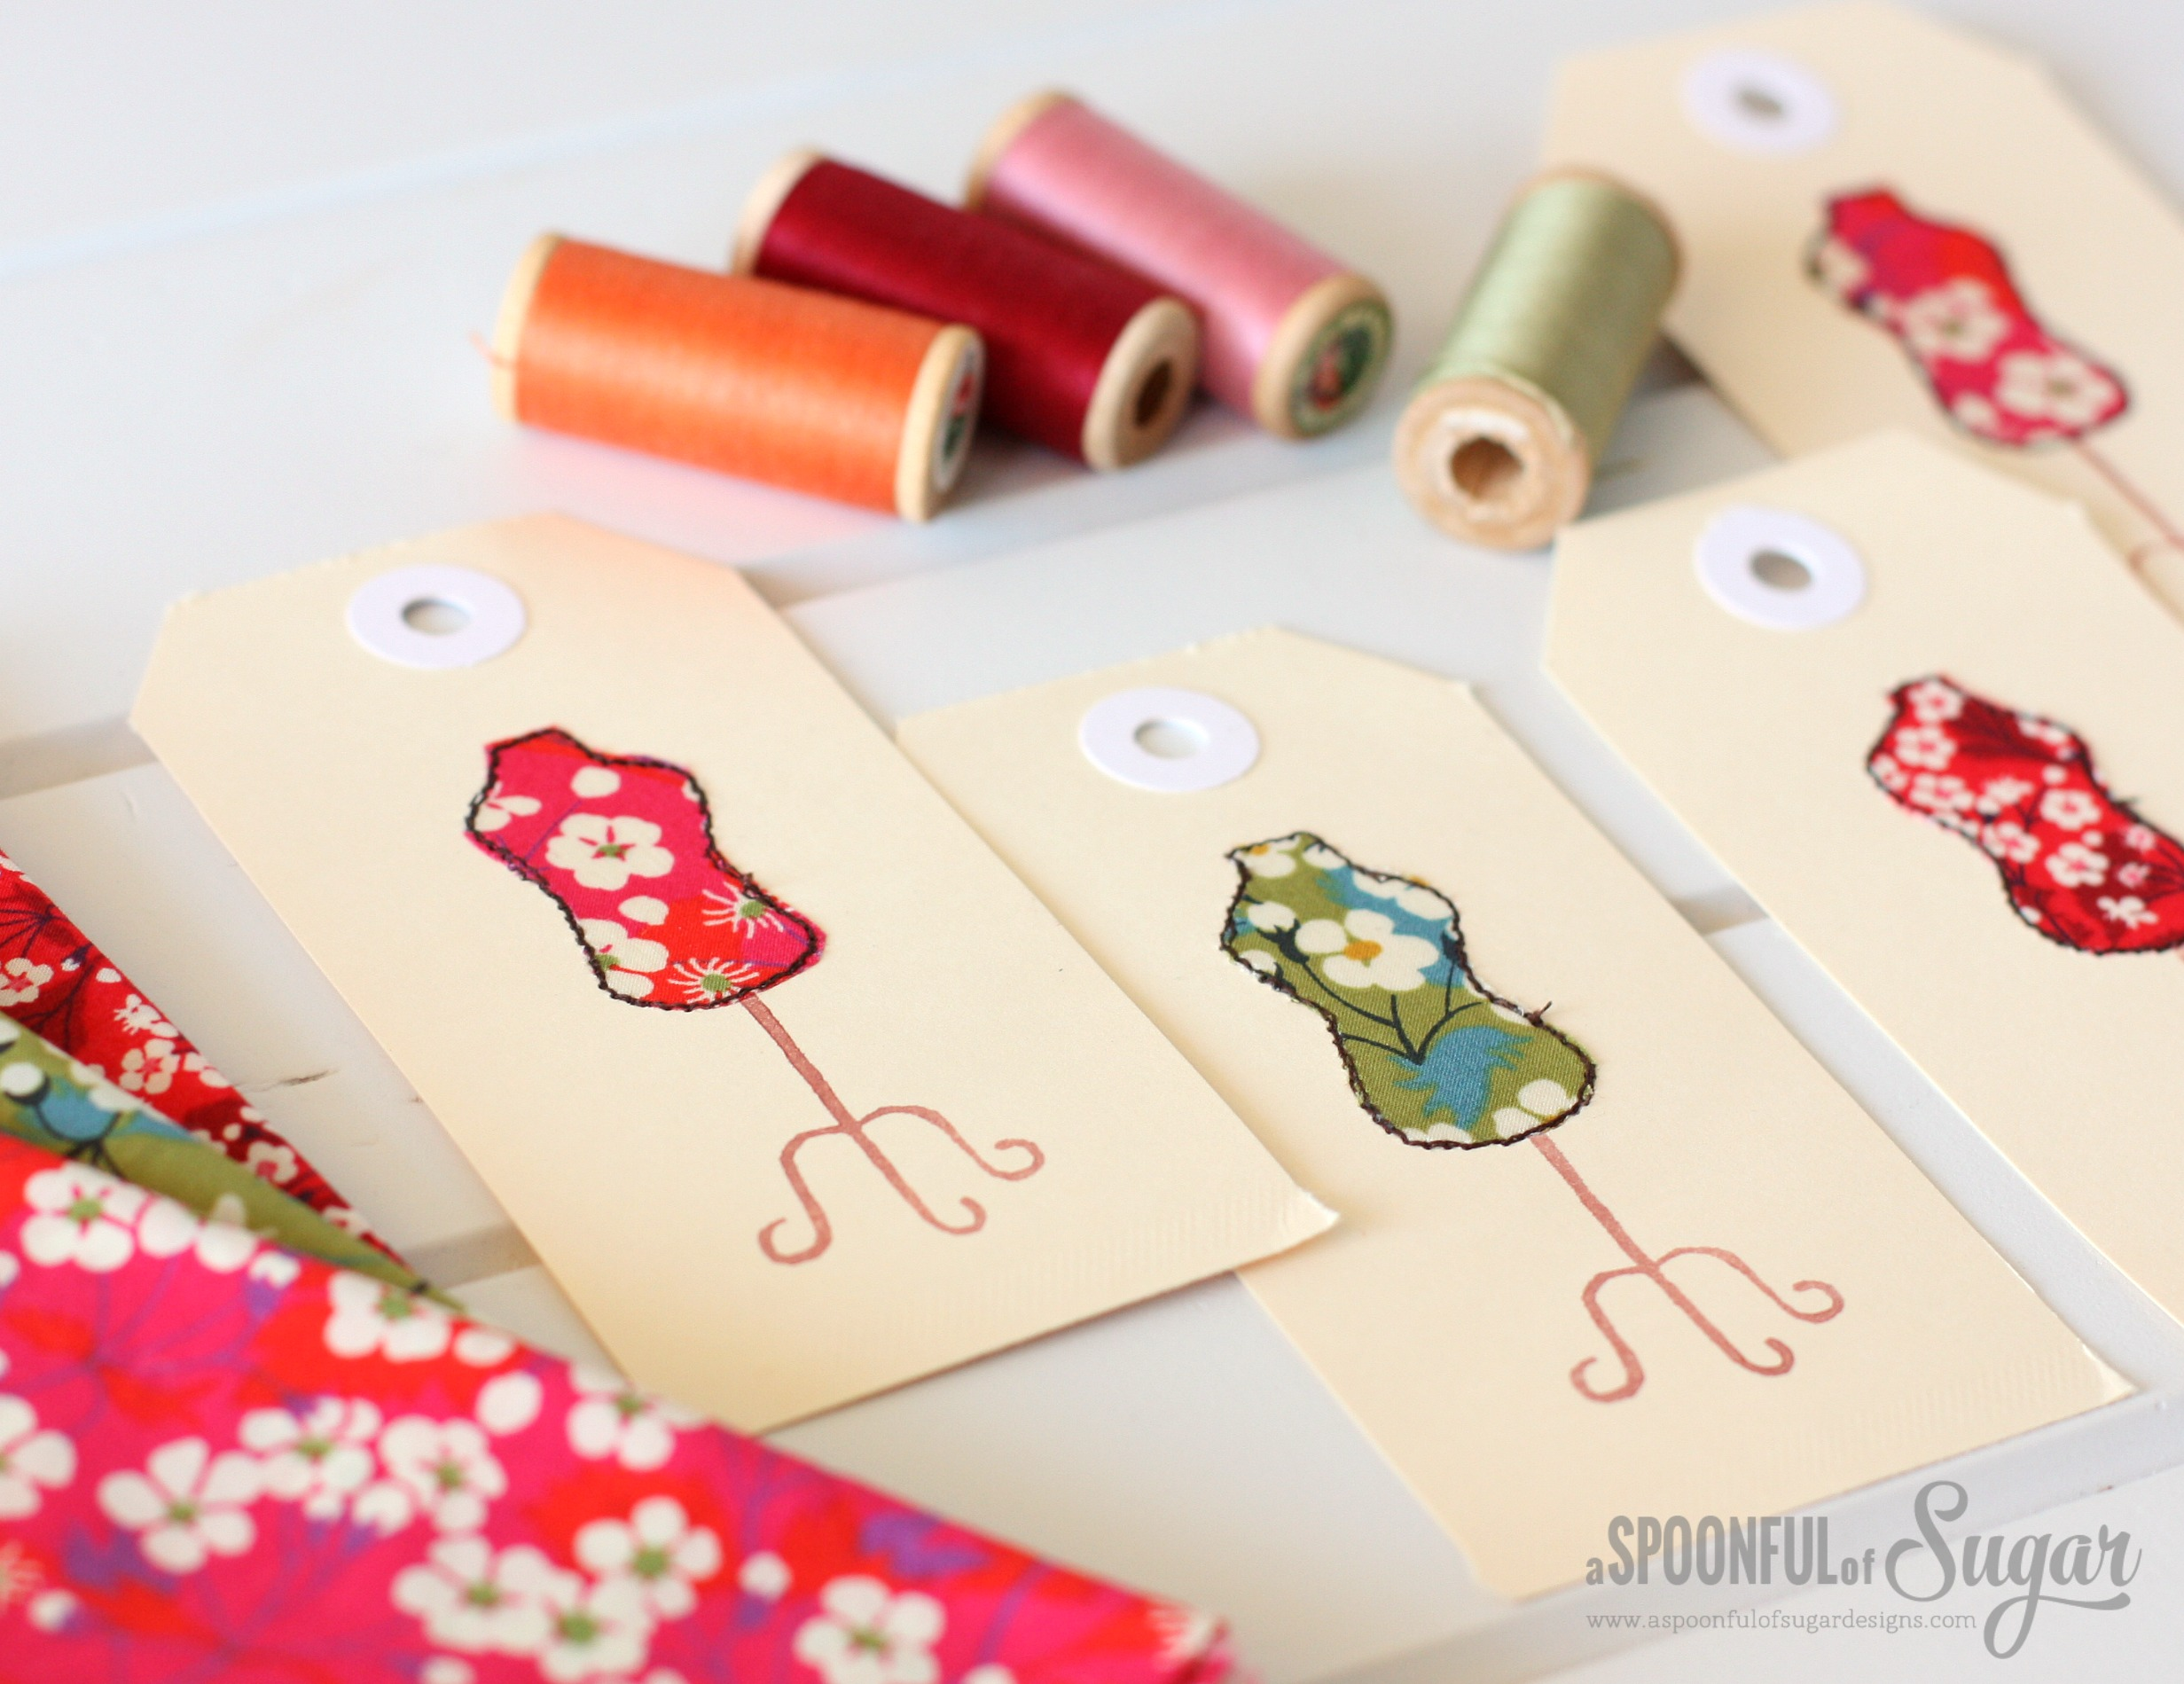 Dress Form Gift Tags - Top Sewing Tutorials from 2016 - A Spoonful of Sugar - www.aspoonfulofsugardesigns.com